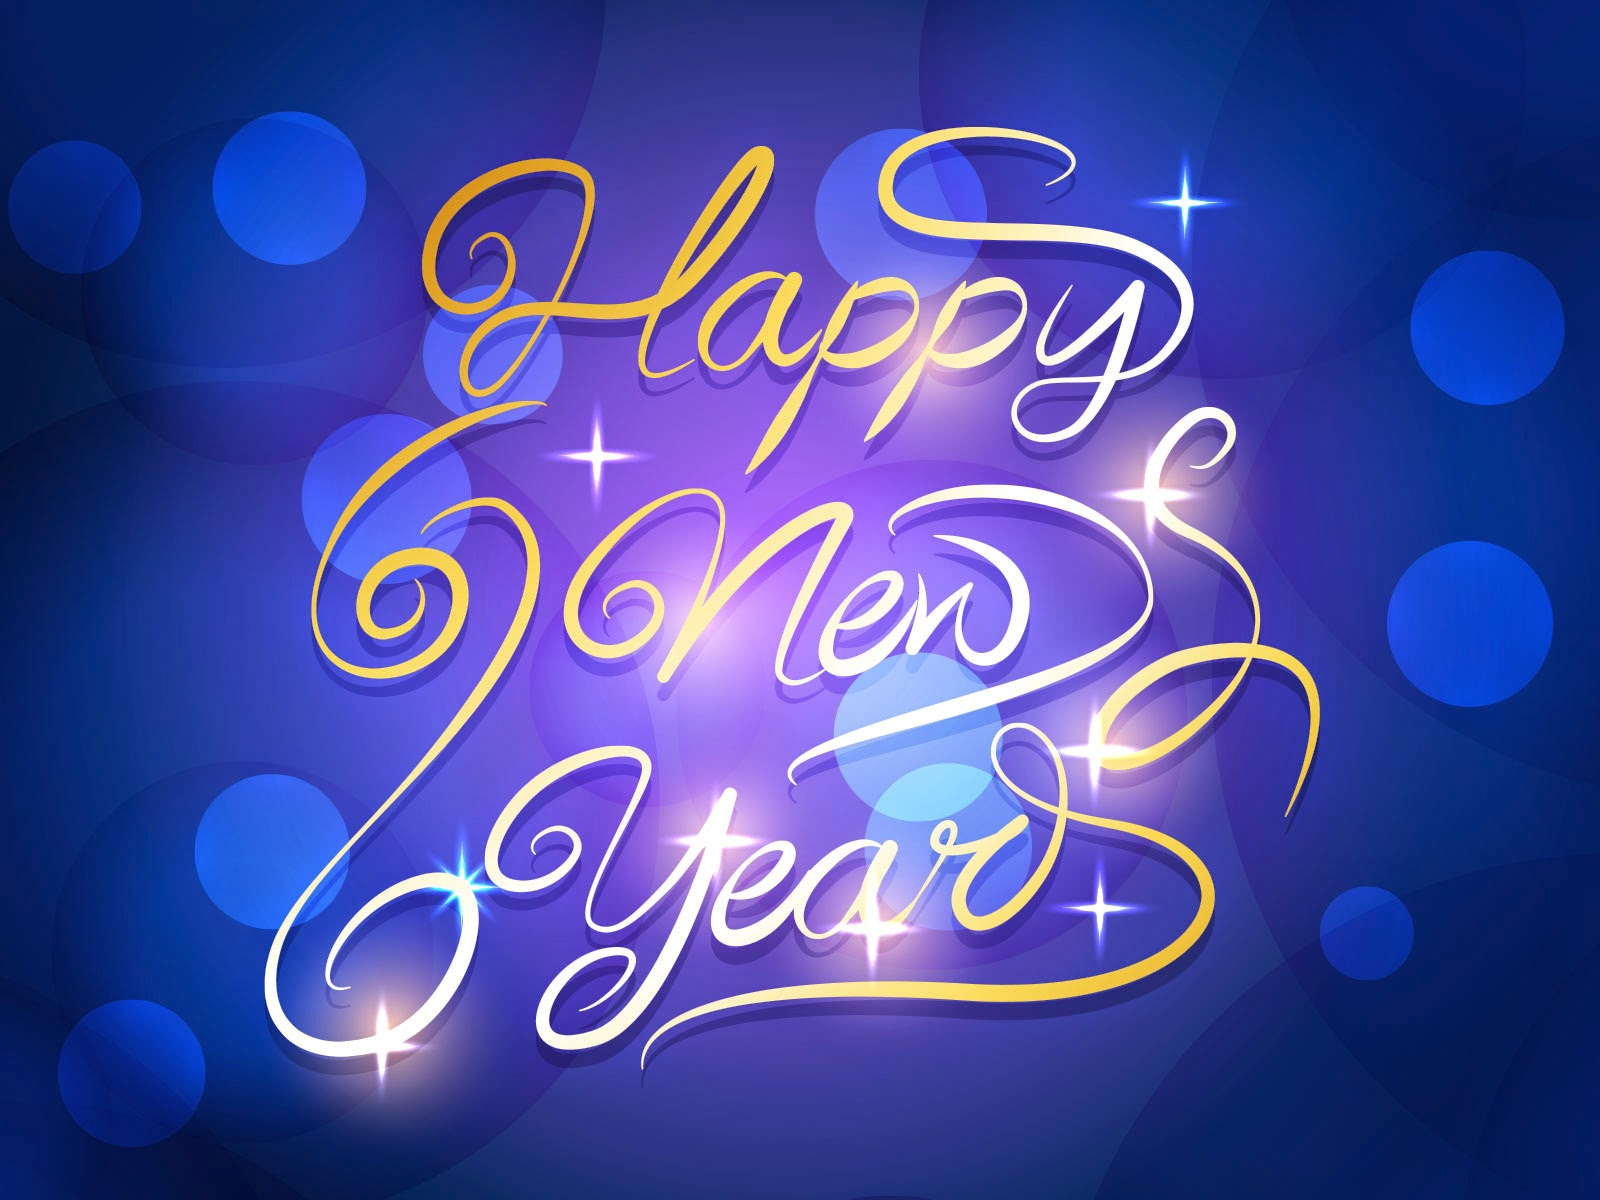 Happy New Year 2016 Wishes Messages Wallpapers